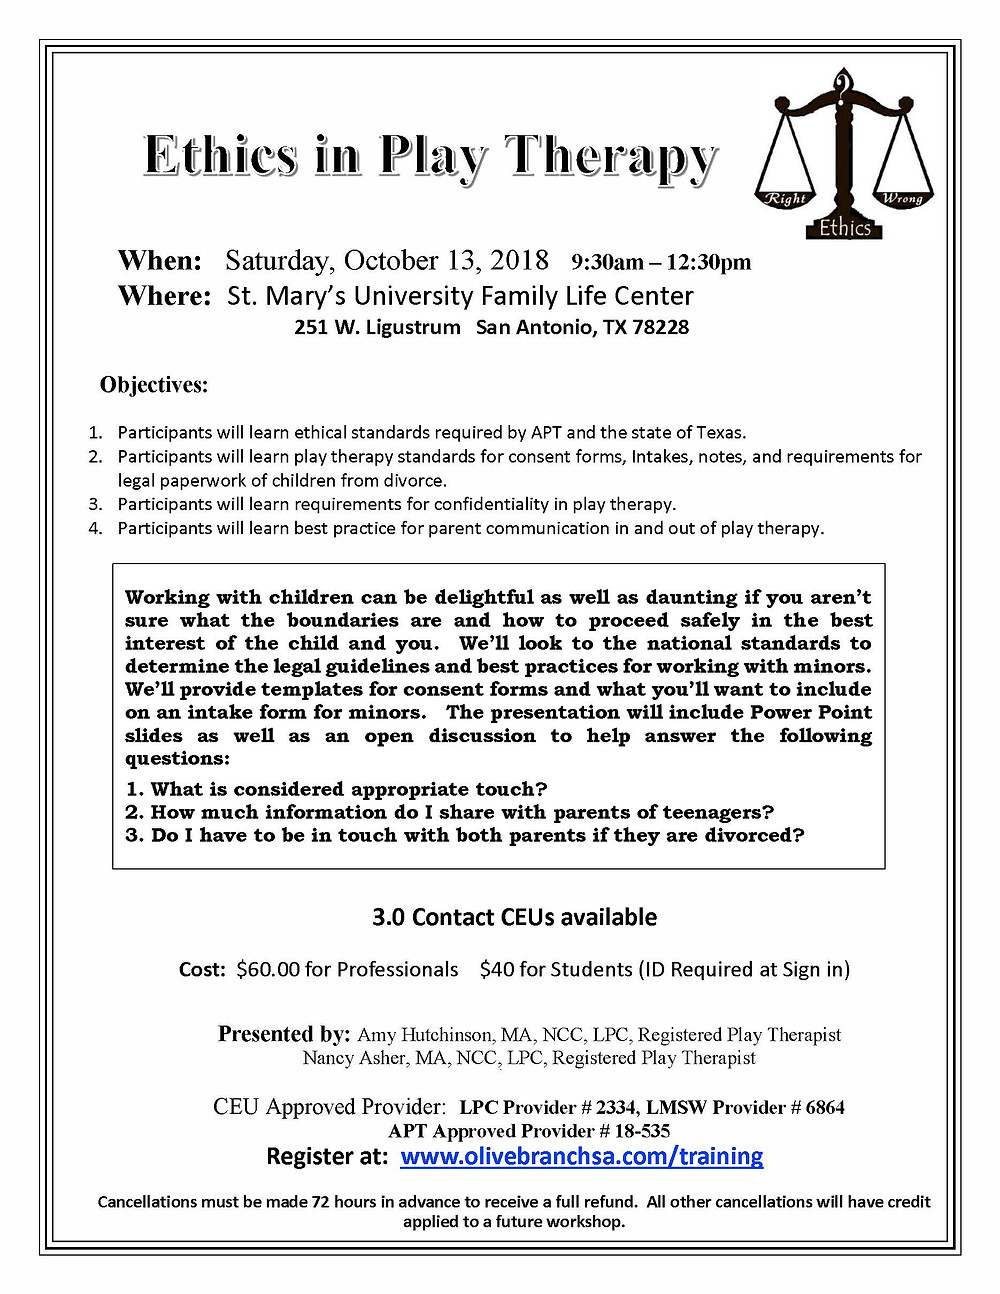 Ethics in Play Therapy